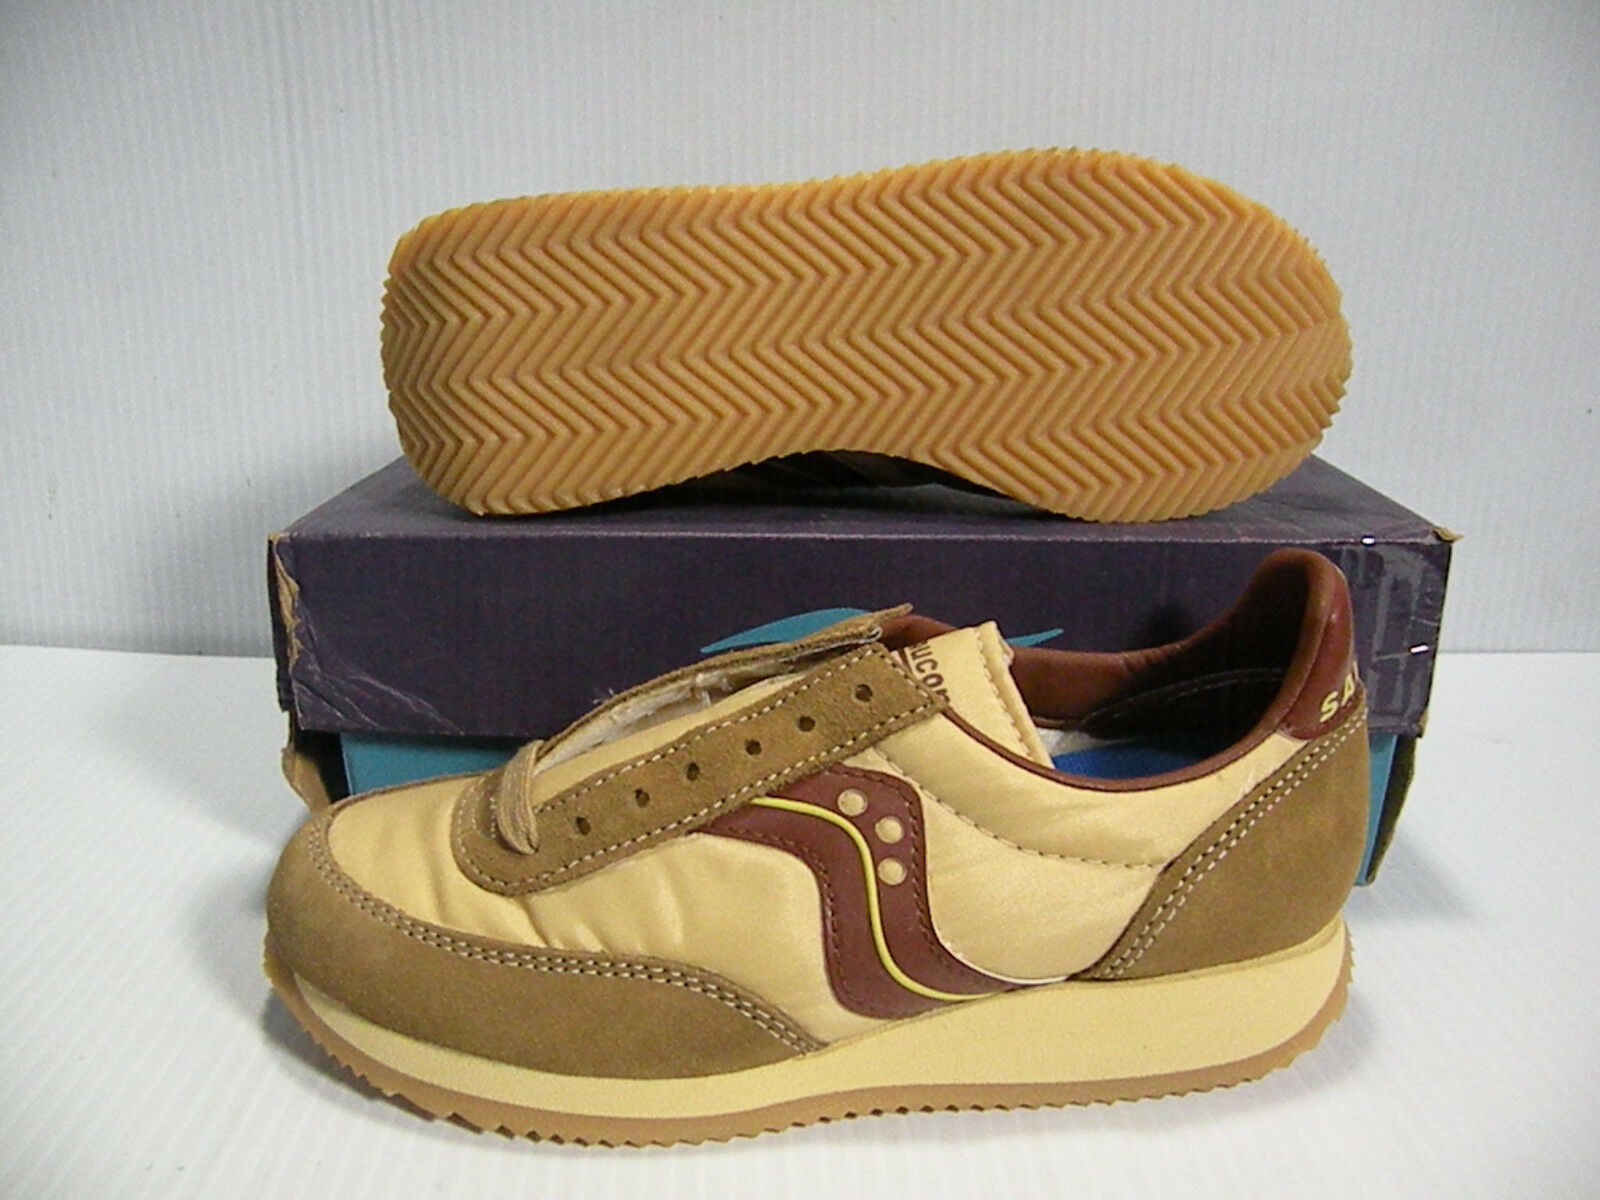 SAUCONY PHOENIX  LOW BROWN/TAN SNEAKERS Donna SHOES BROWN/TAN LOW 1485-2 SIZE 5 NEW ef3b05